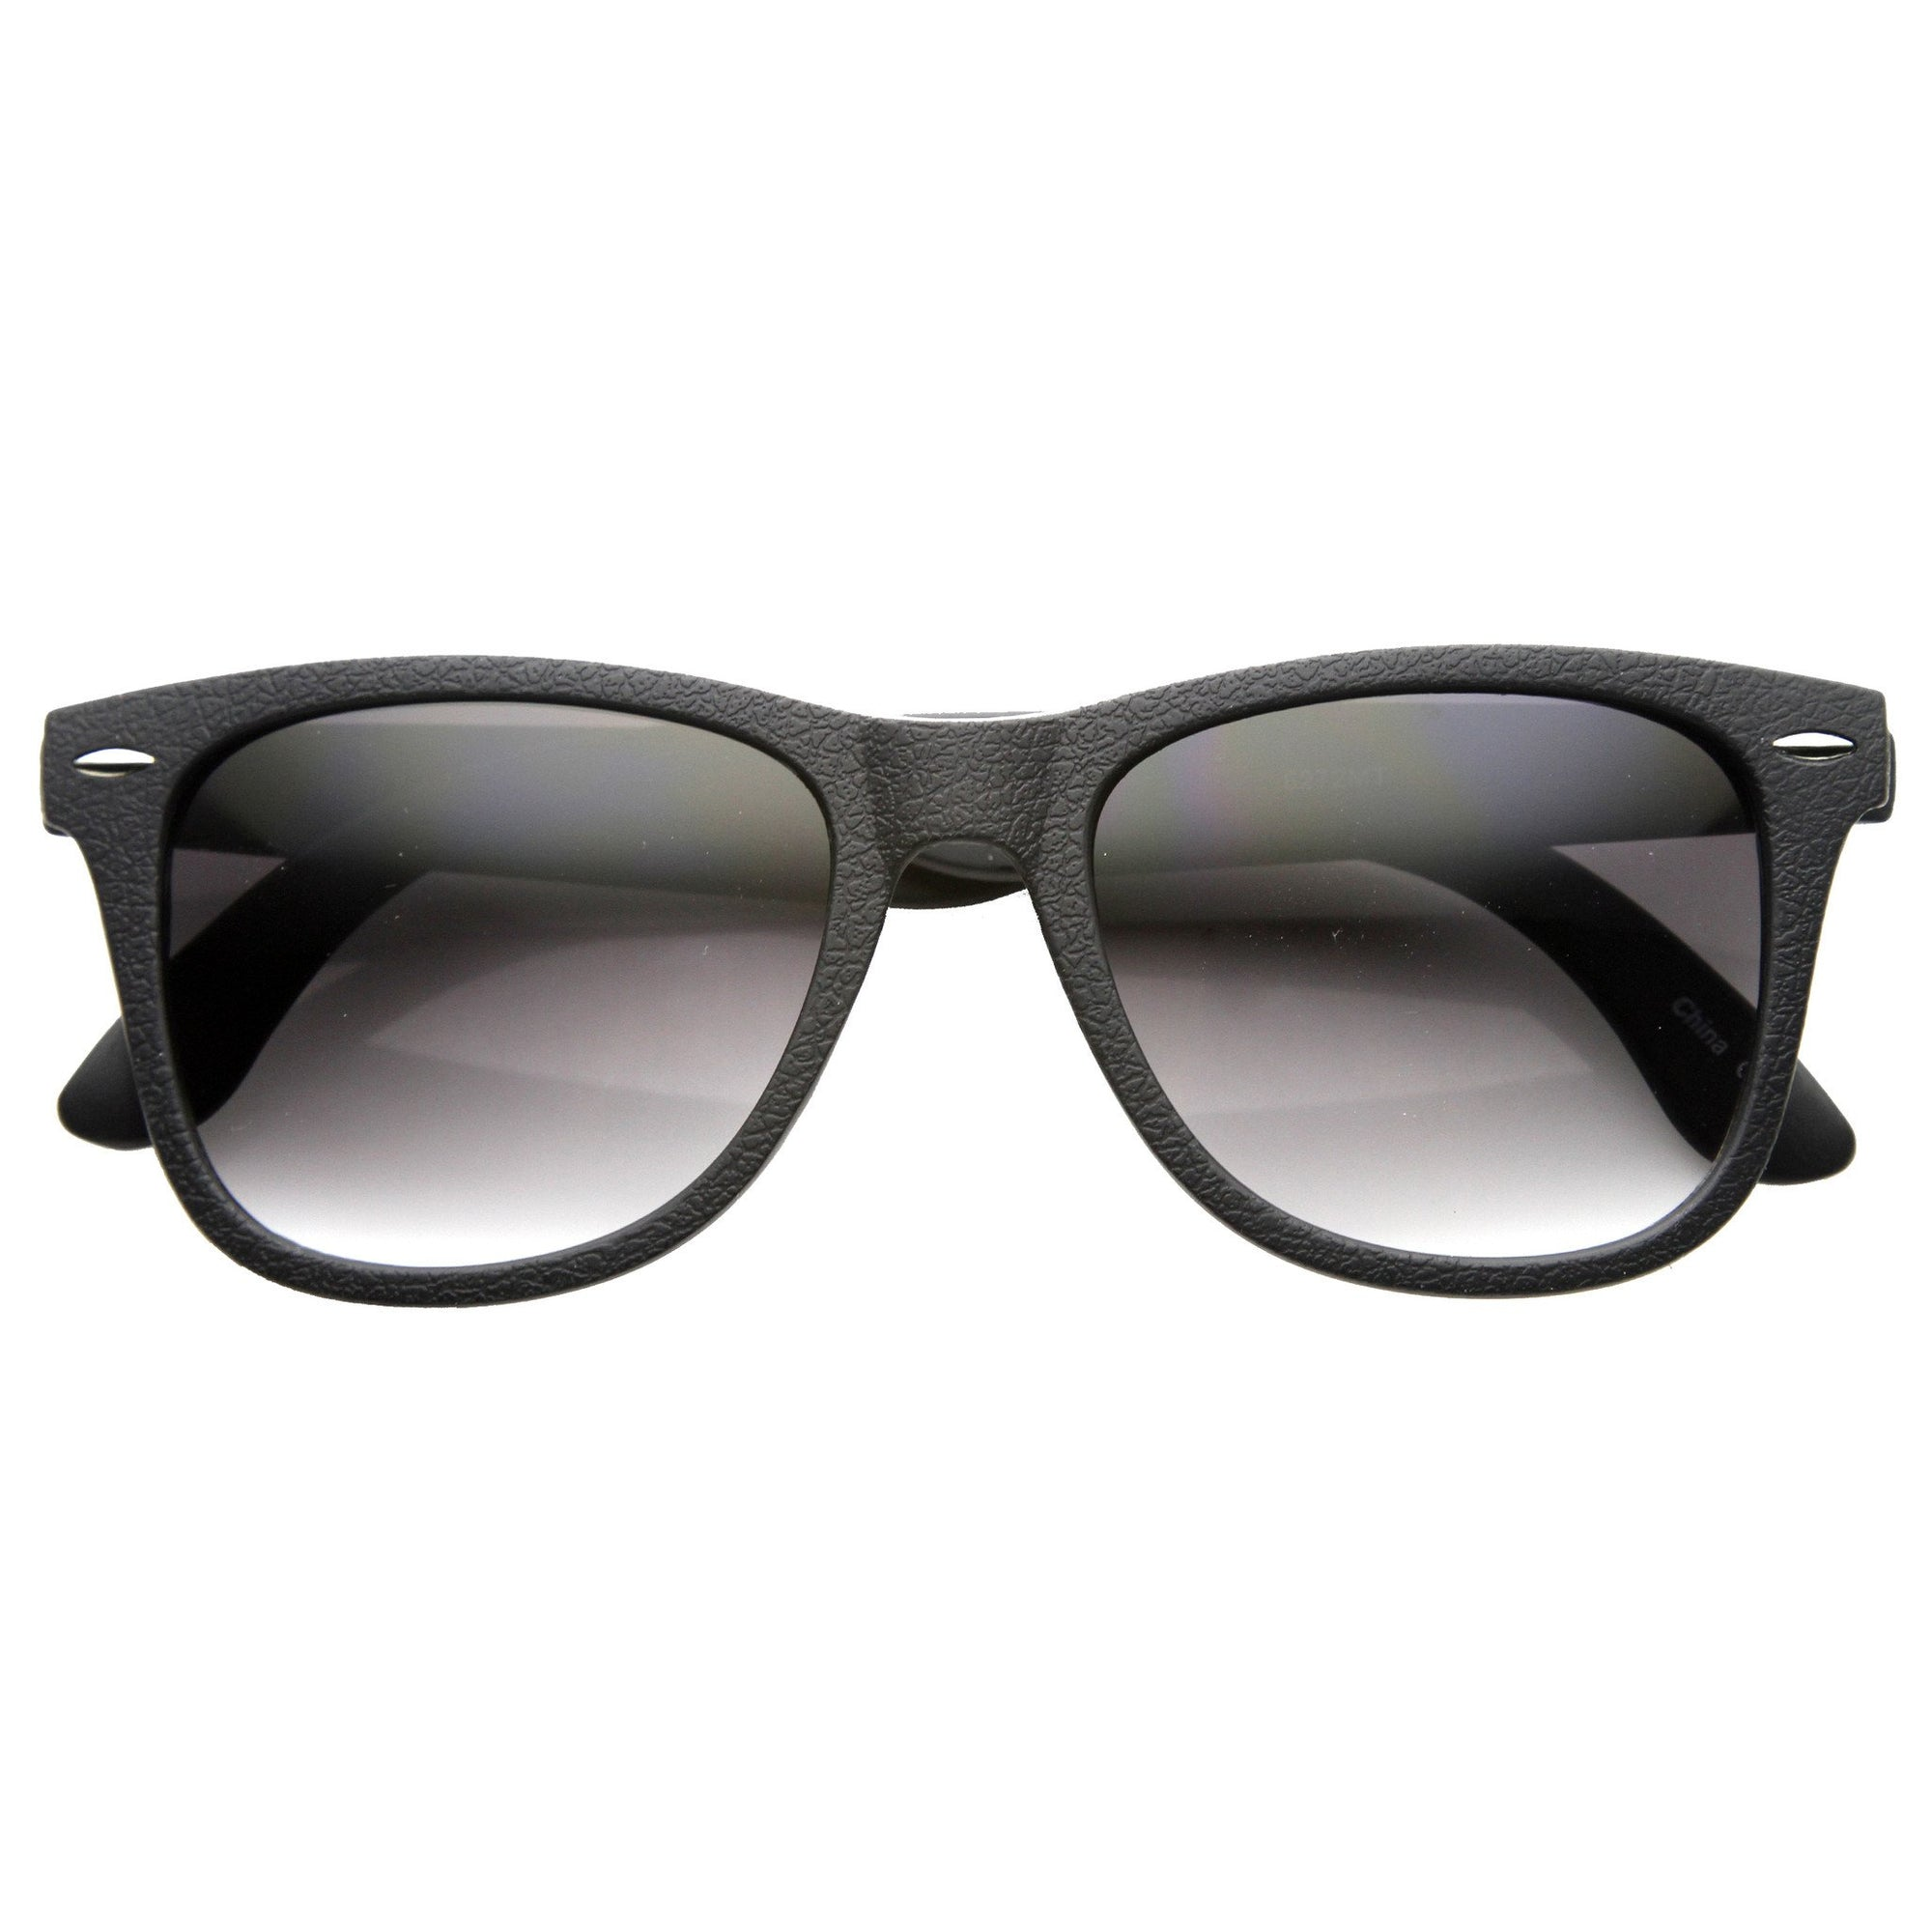 Wayfare Inspired Classic Large Square Horn Rimmed Sunglasses